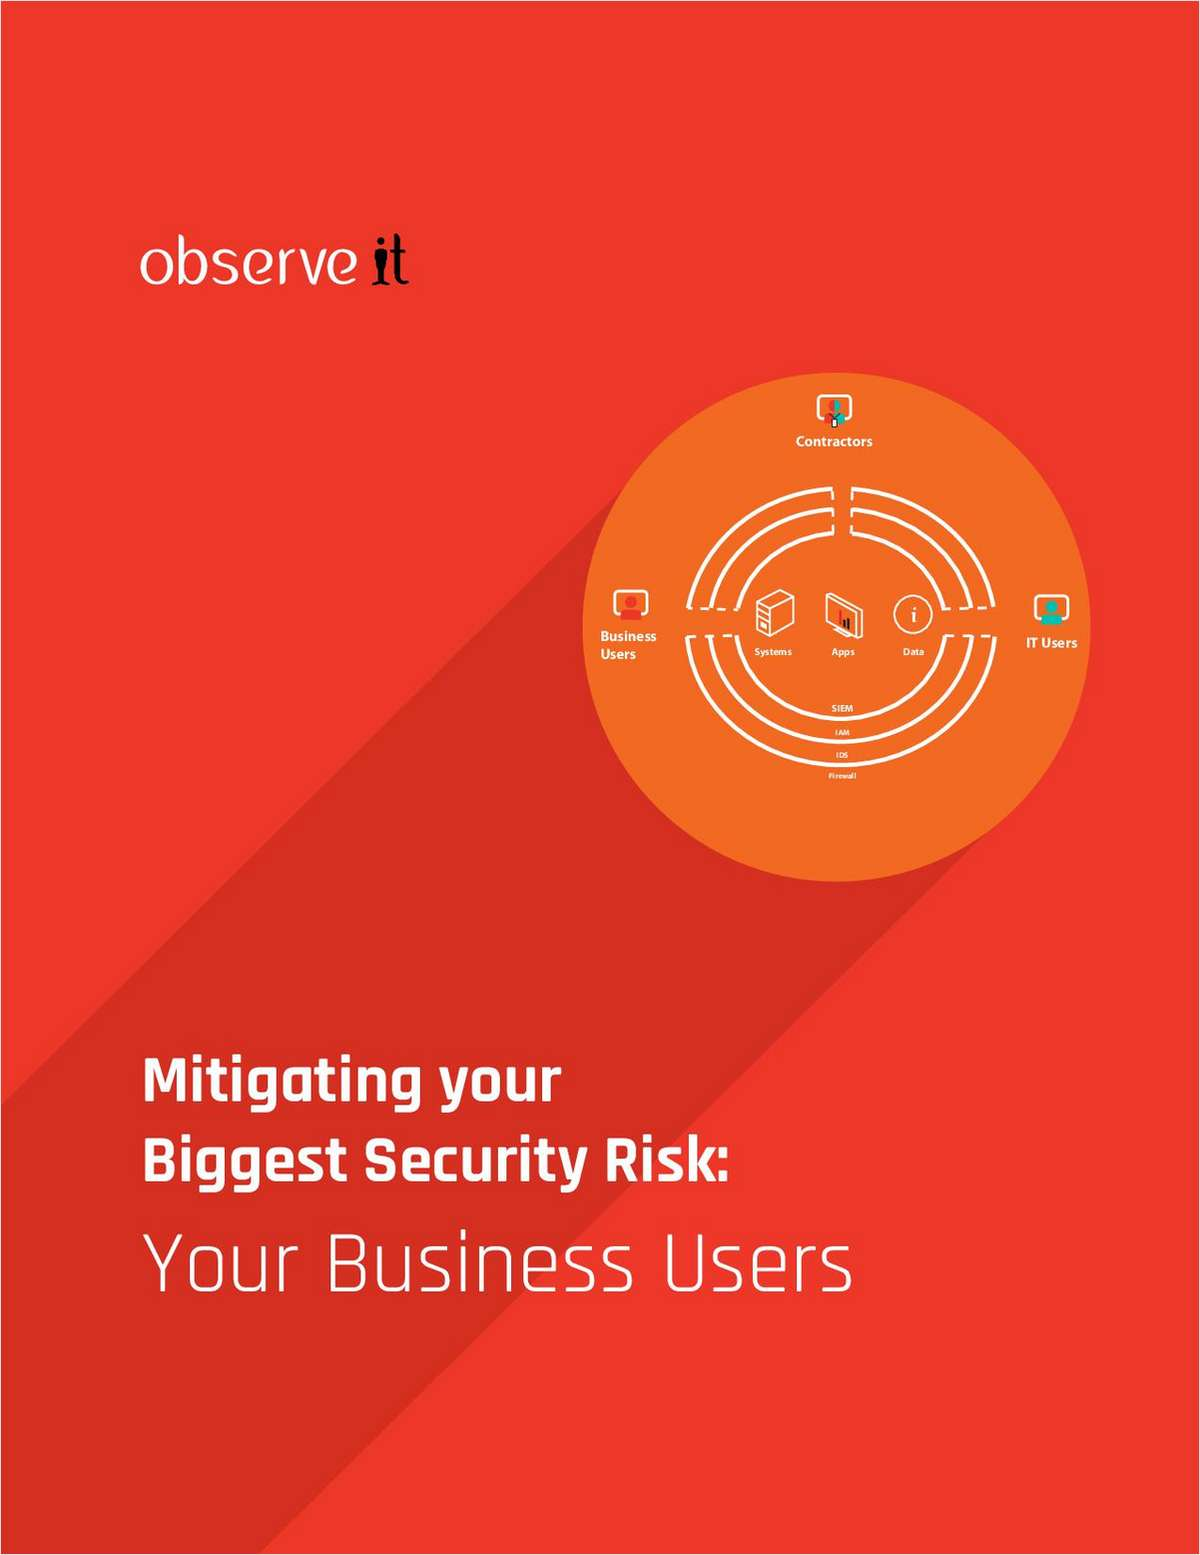 Mitigating Your Biggest Security Risk: Your Business Users